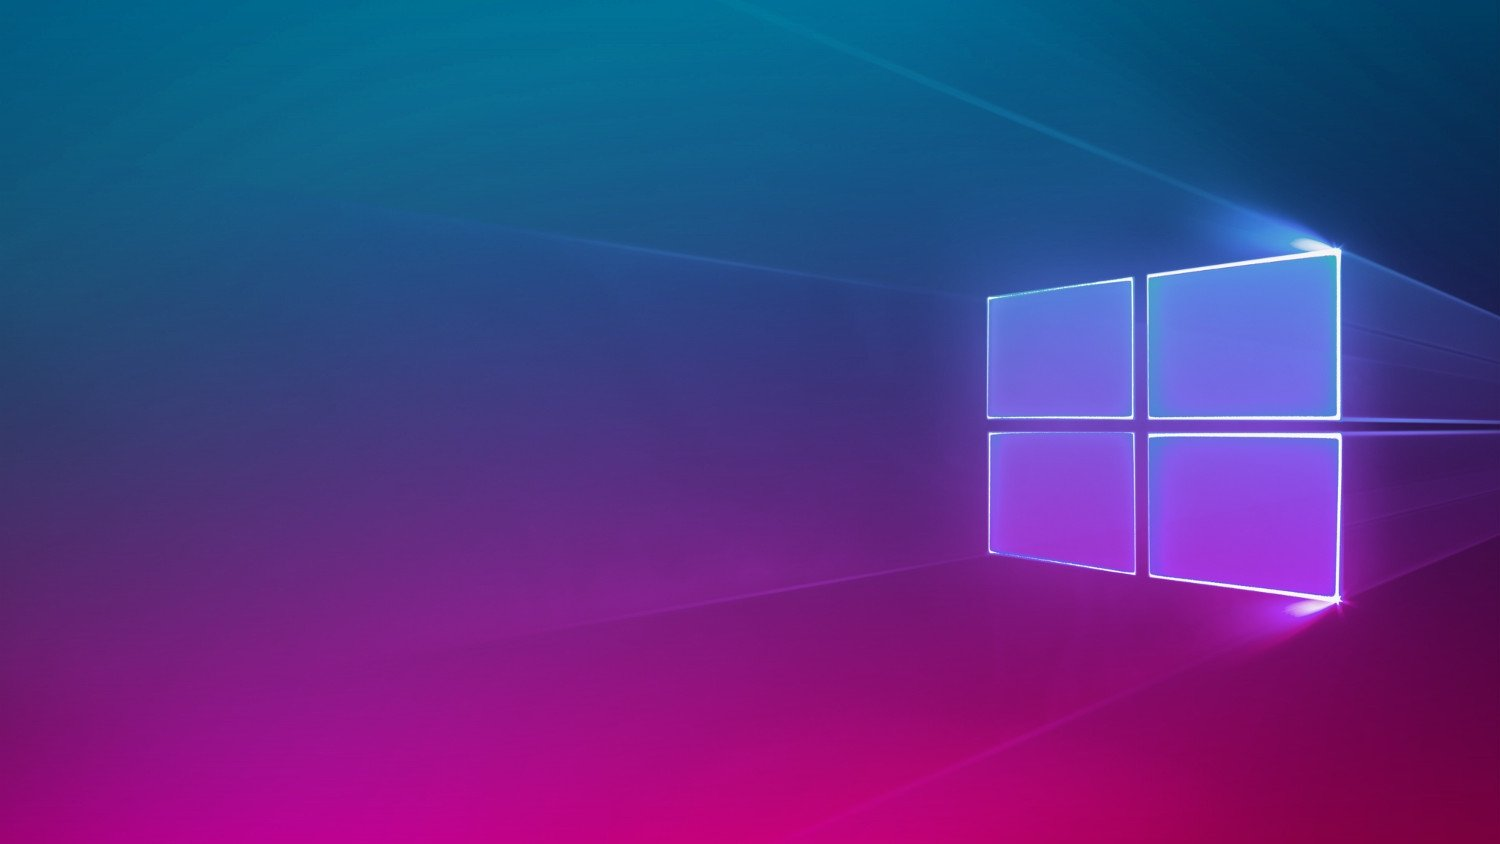 wallpaper rosa do Windows 10